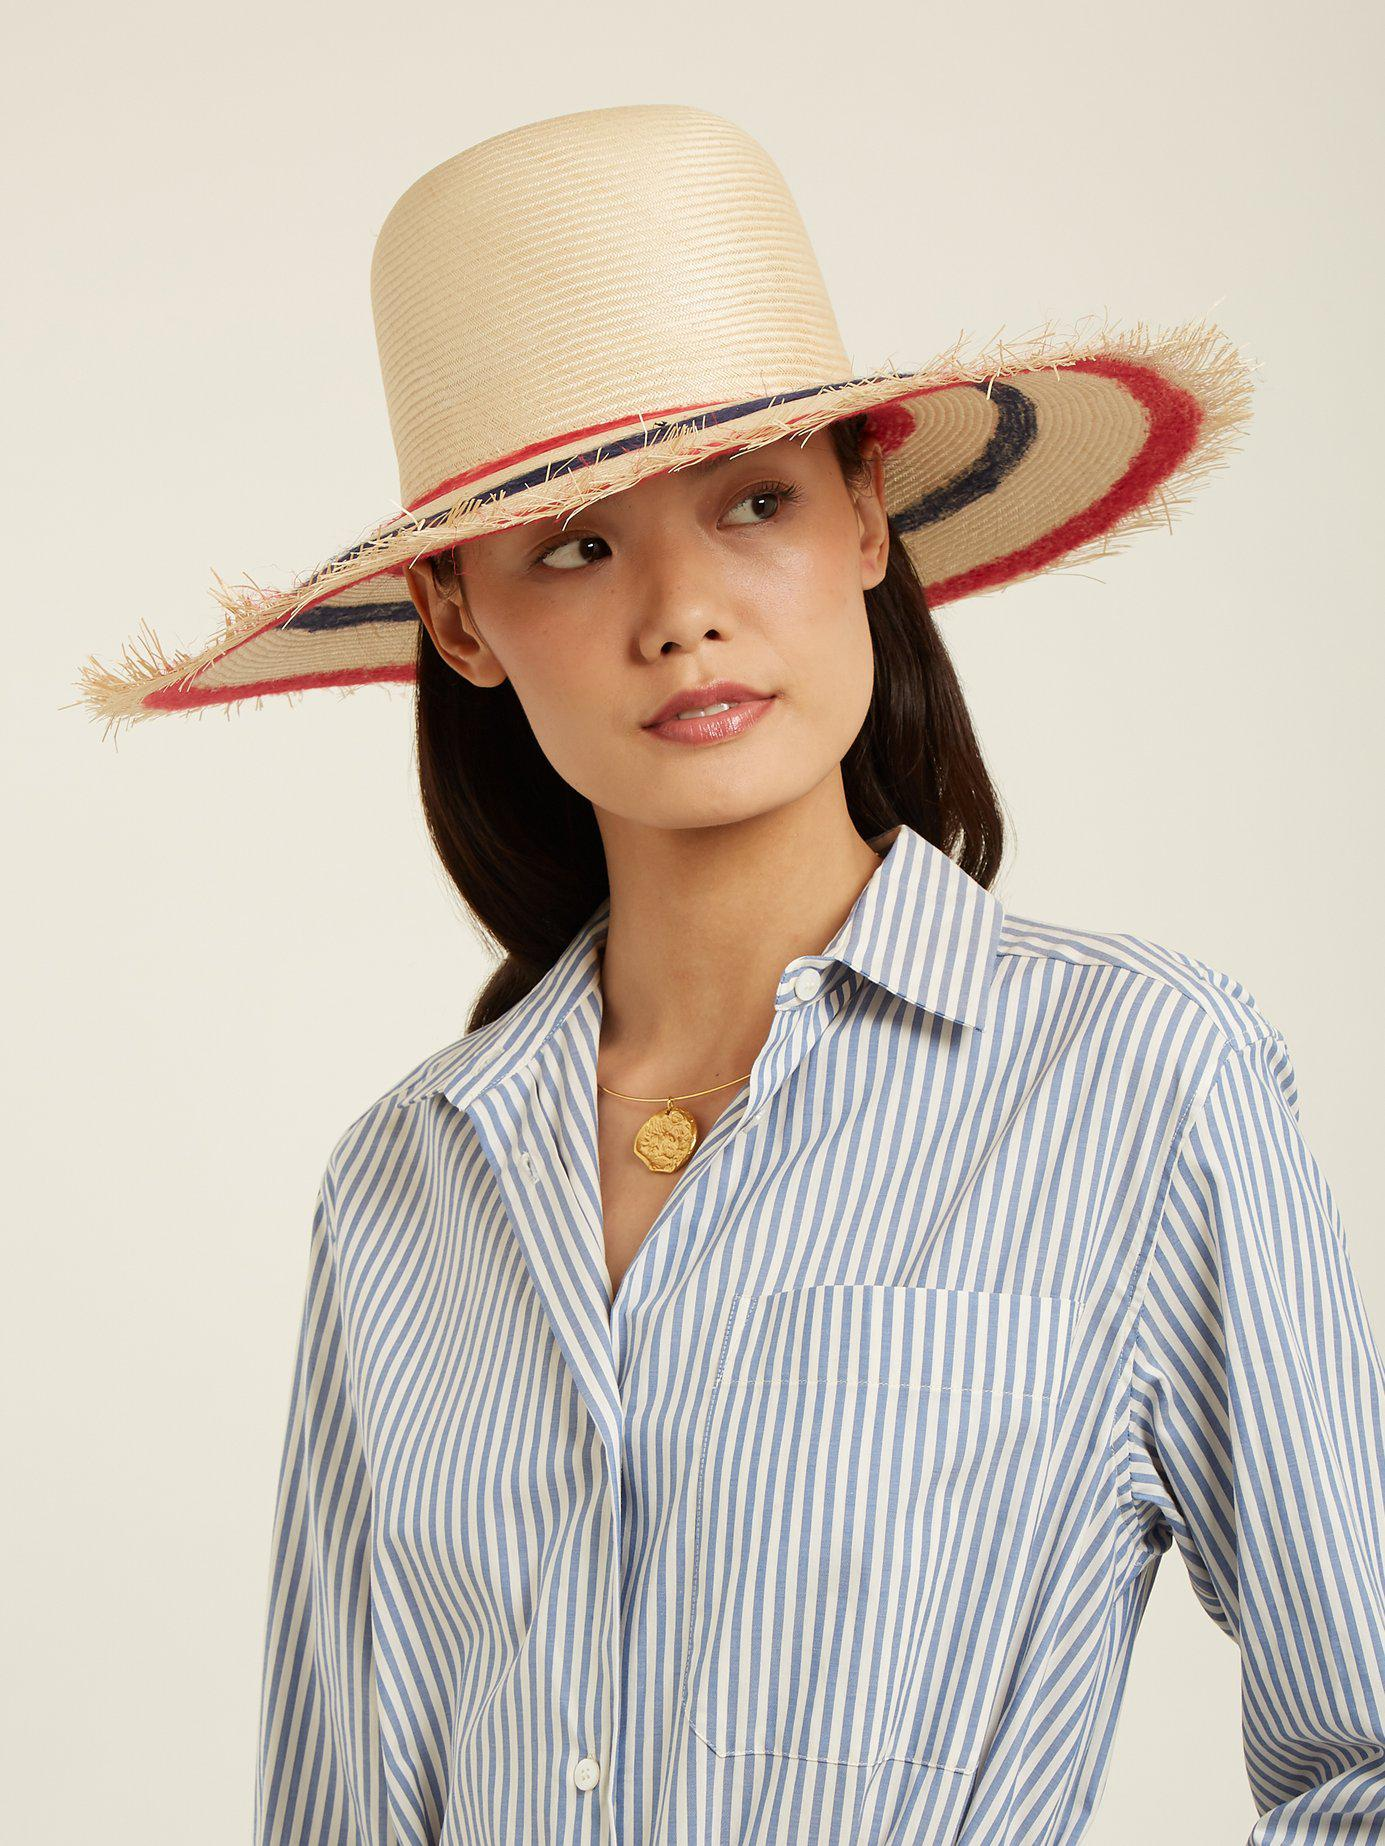 022b42f7233 Filù Hats - Multicolor Sinatra Feather Trimmed Straw Hat - Lyst. View  fullscreen